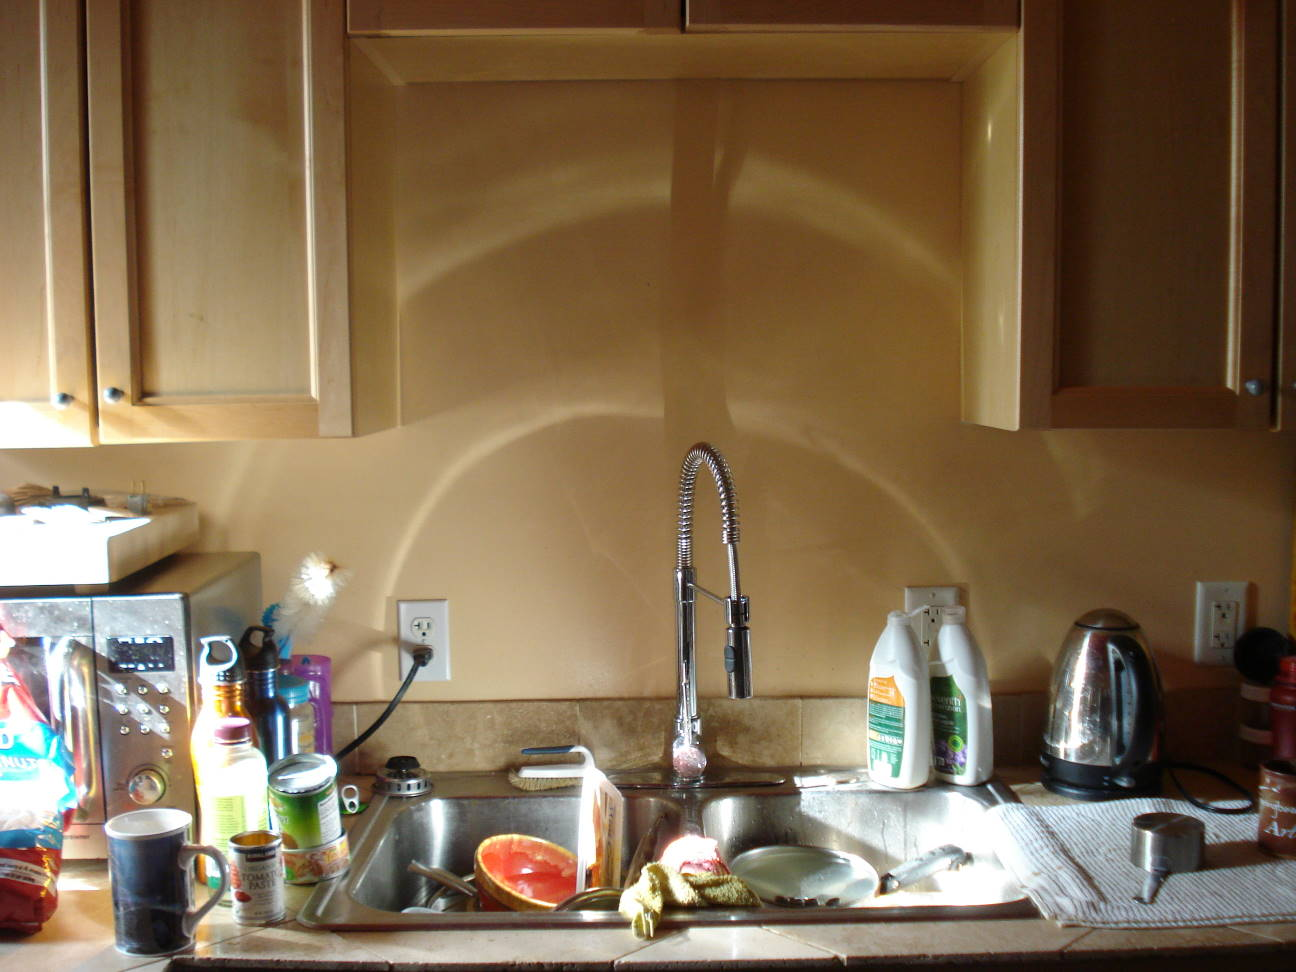 The Heavenly Glow of the Kitchen Sink